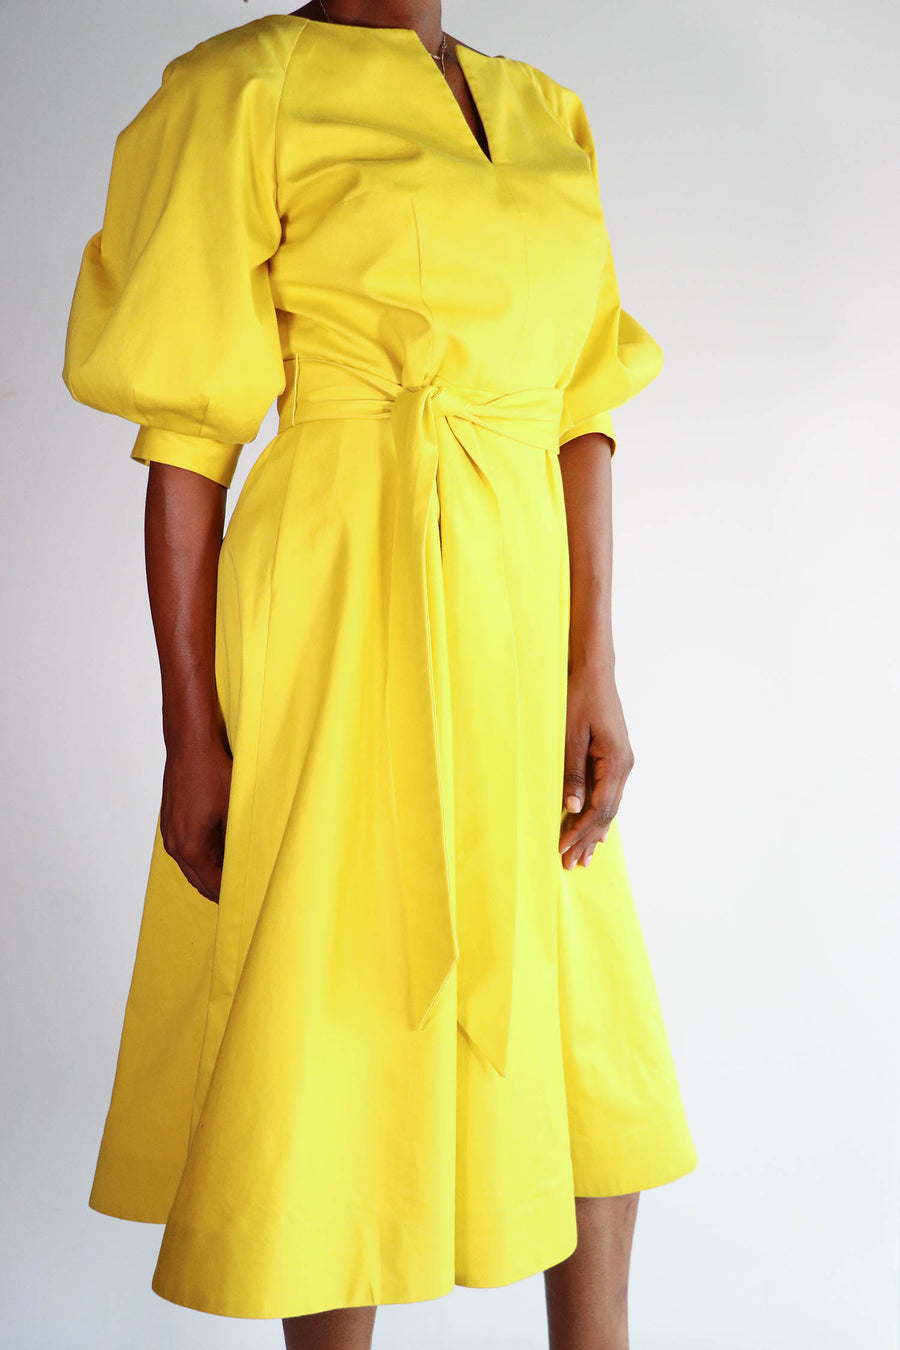 Barbara tFrank - Yellow A Line Dress - 22